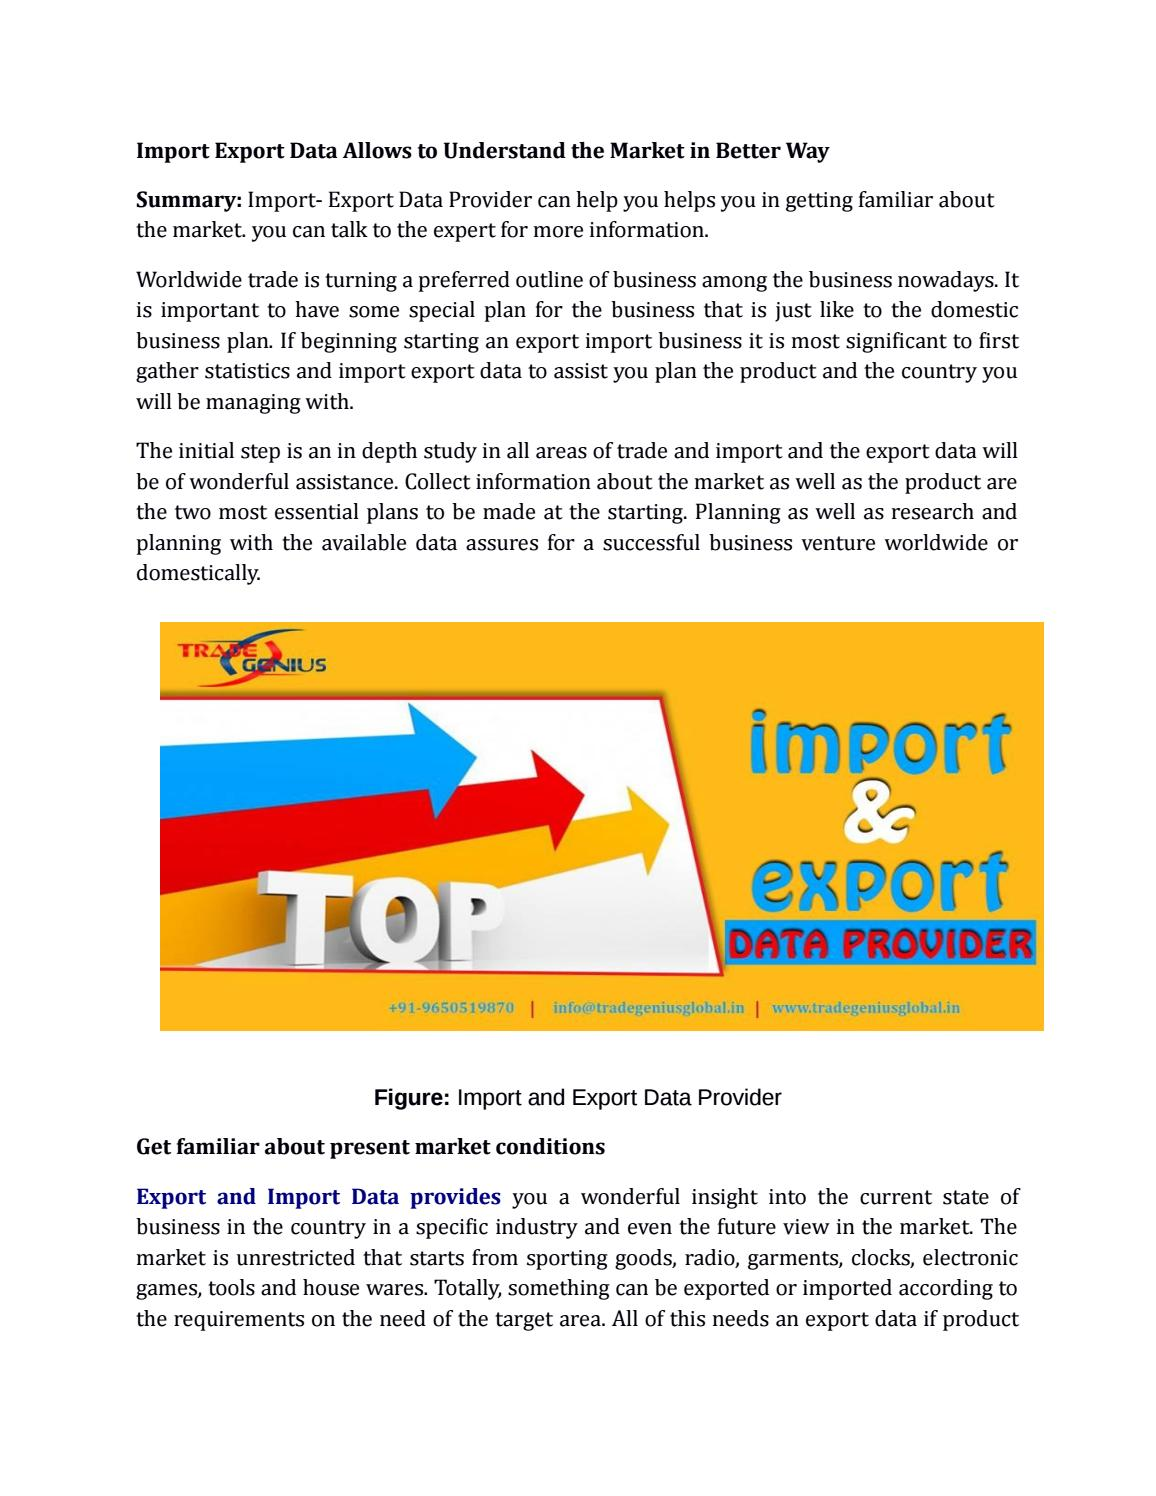 Import Export Data Allows to Understand the Market in Better Way by